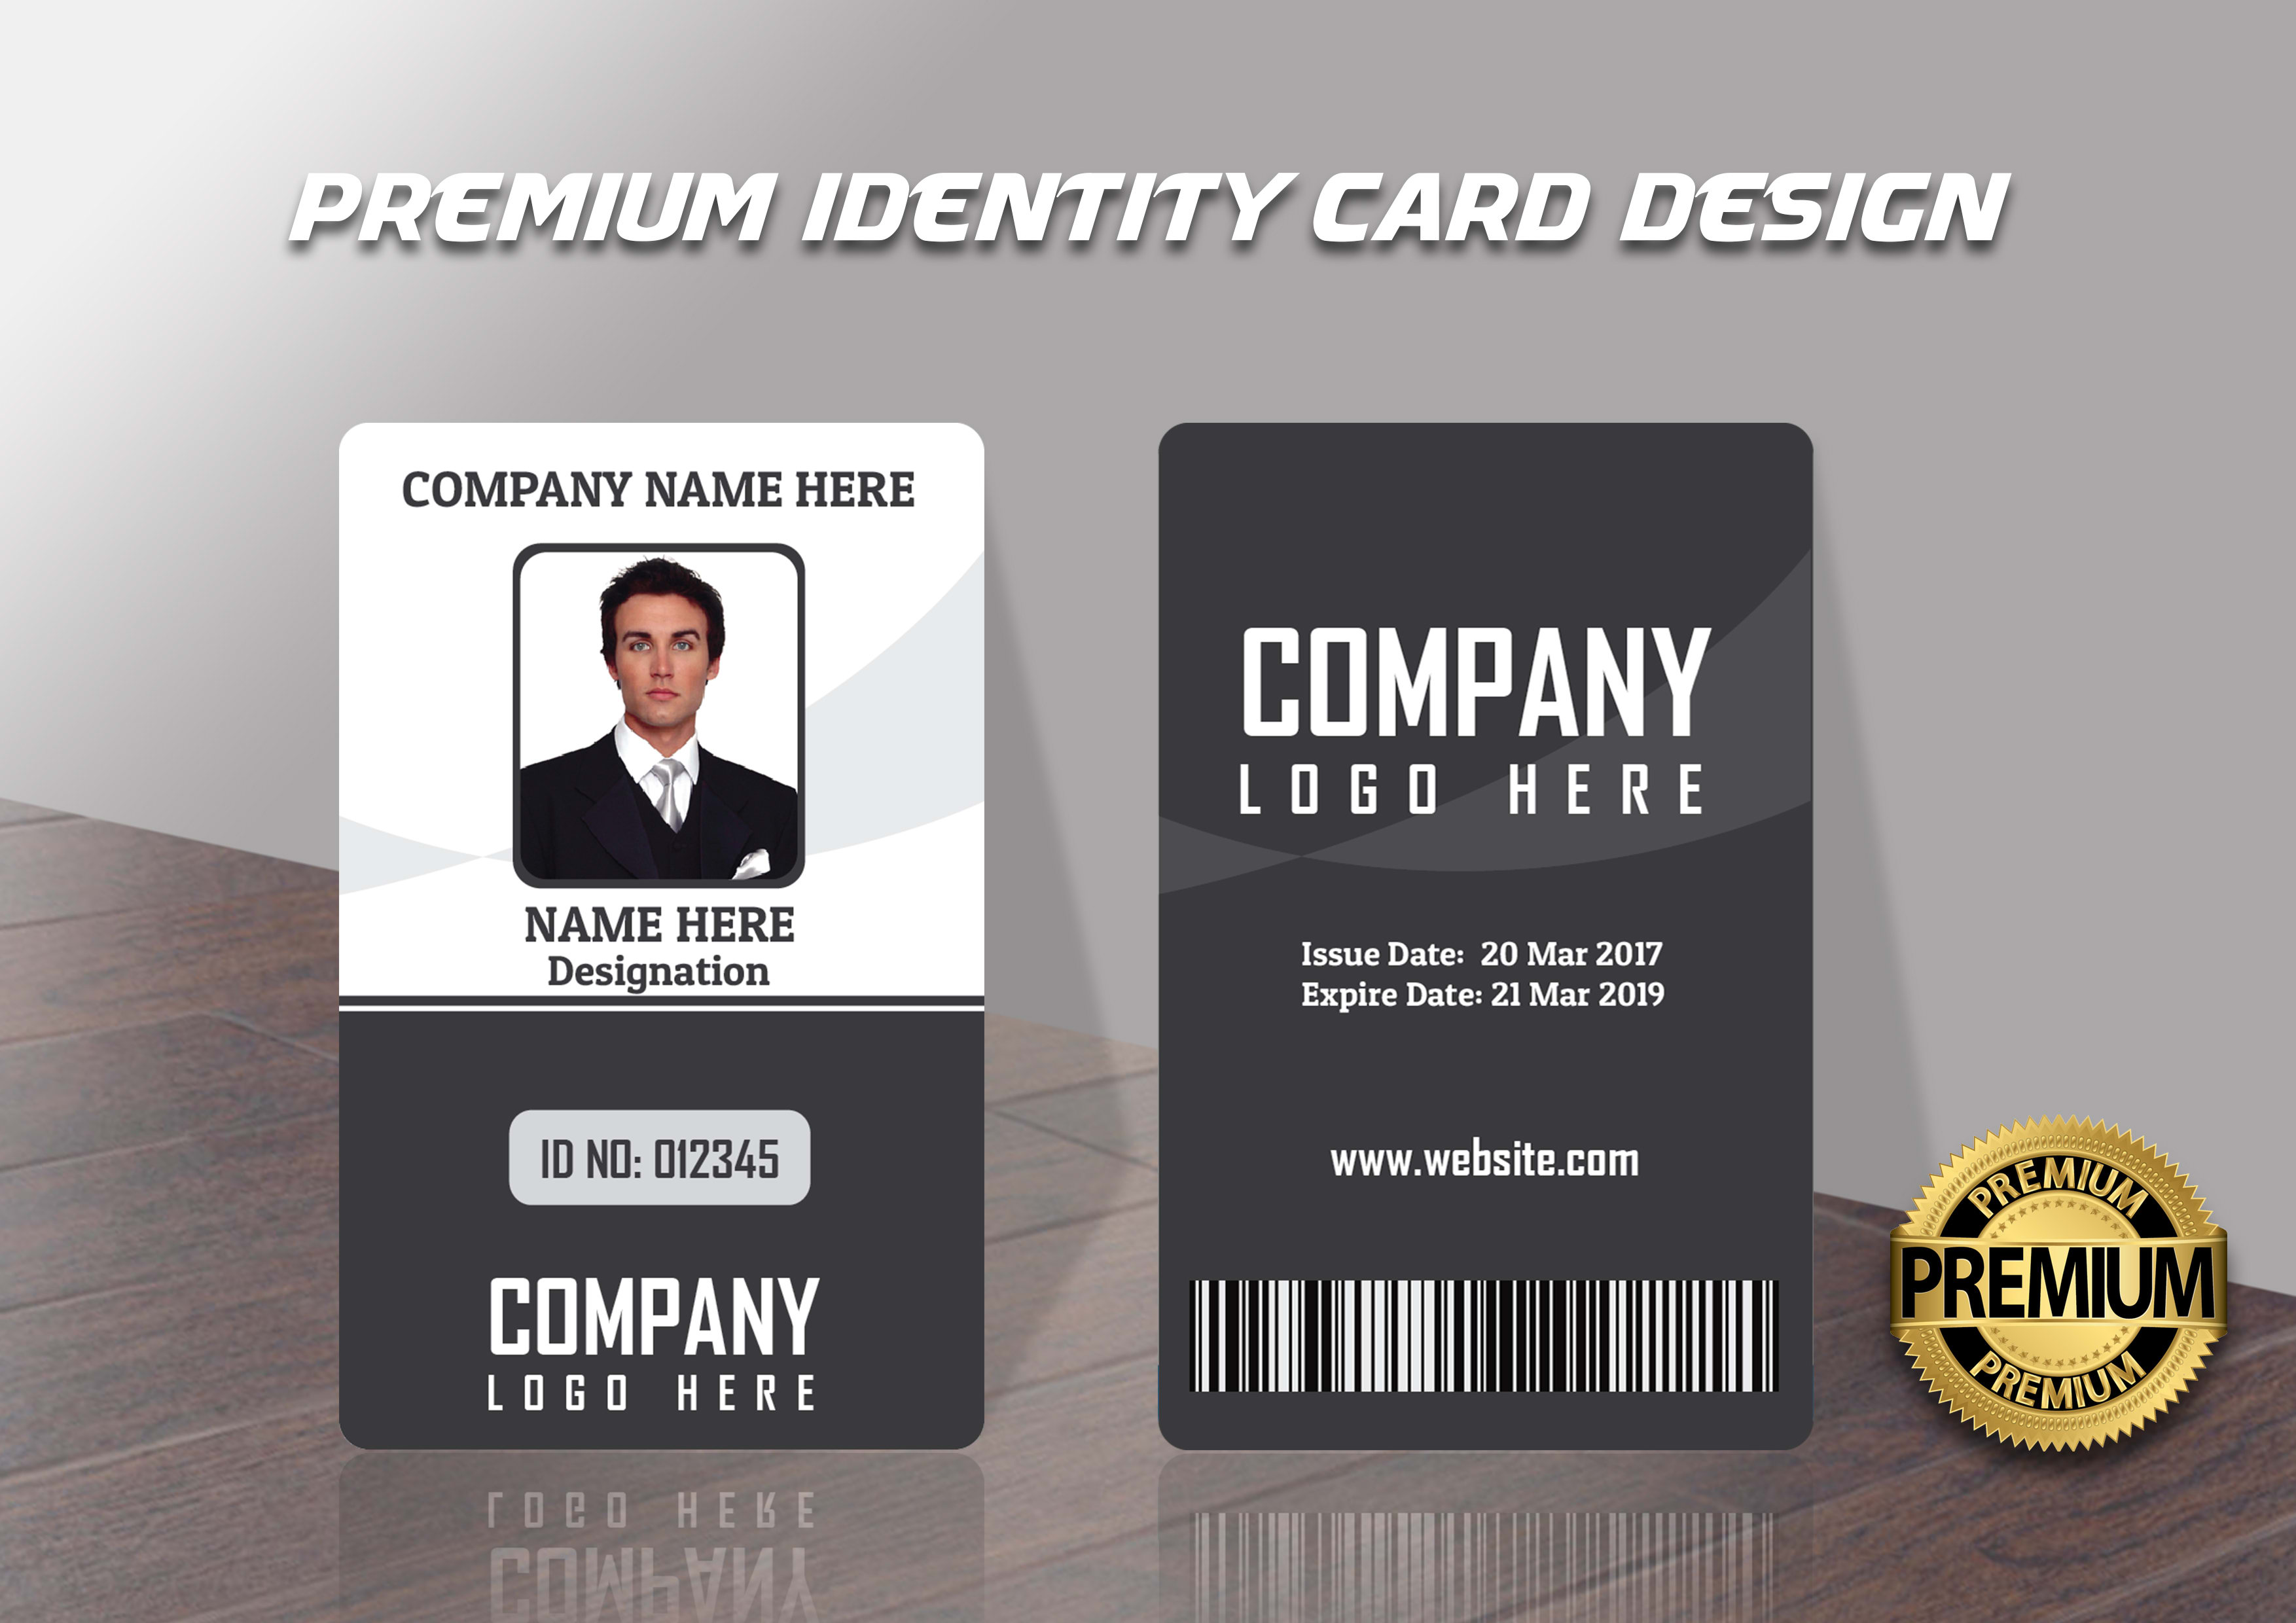 Design premium quality modern and unique id cards, templates by